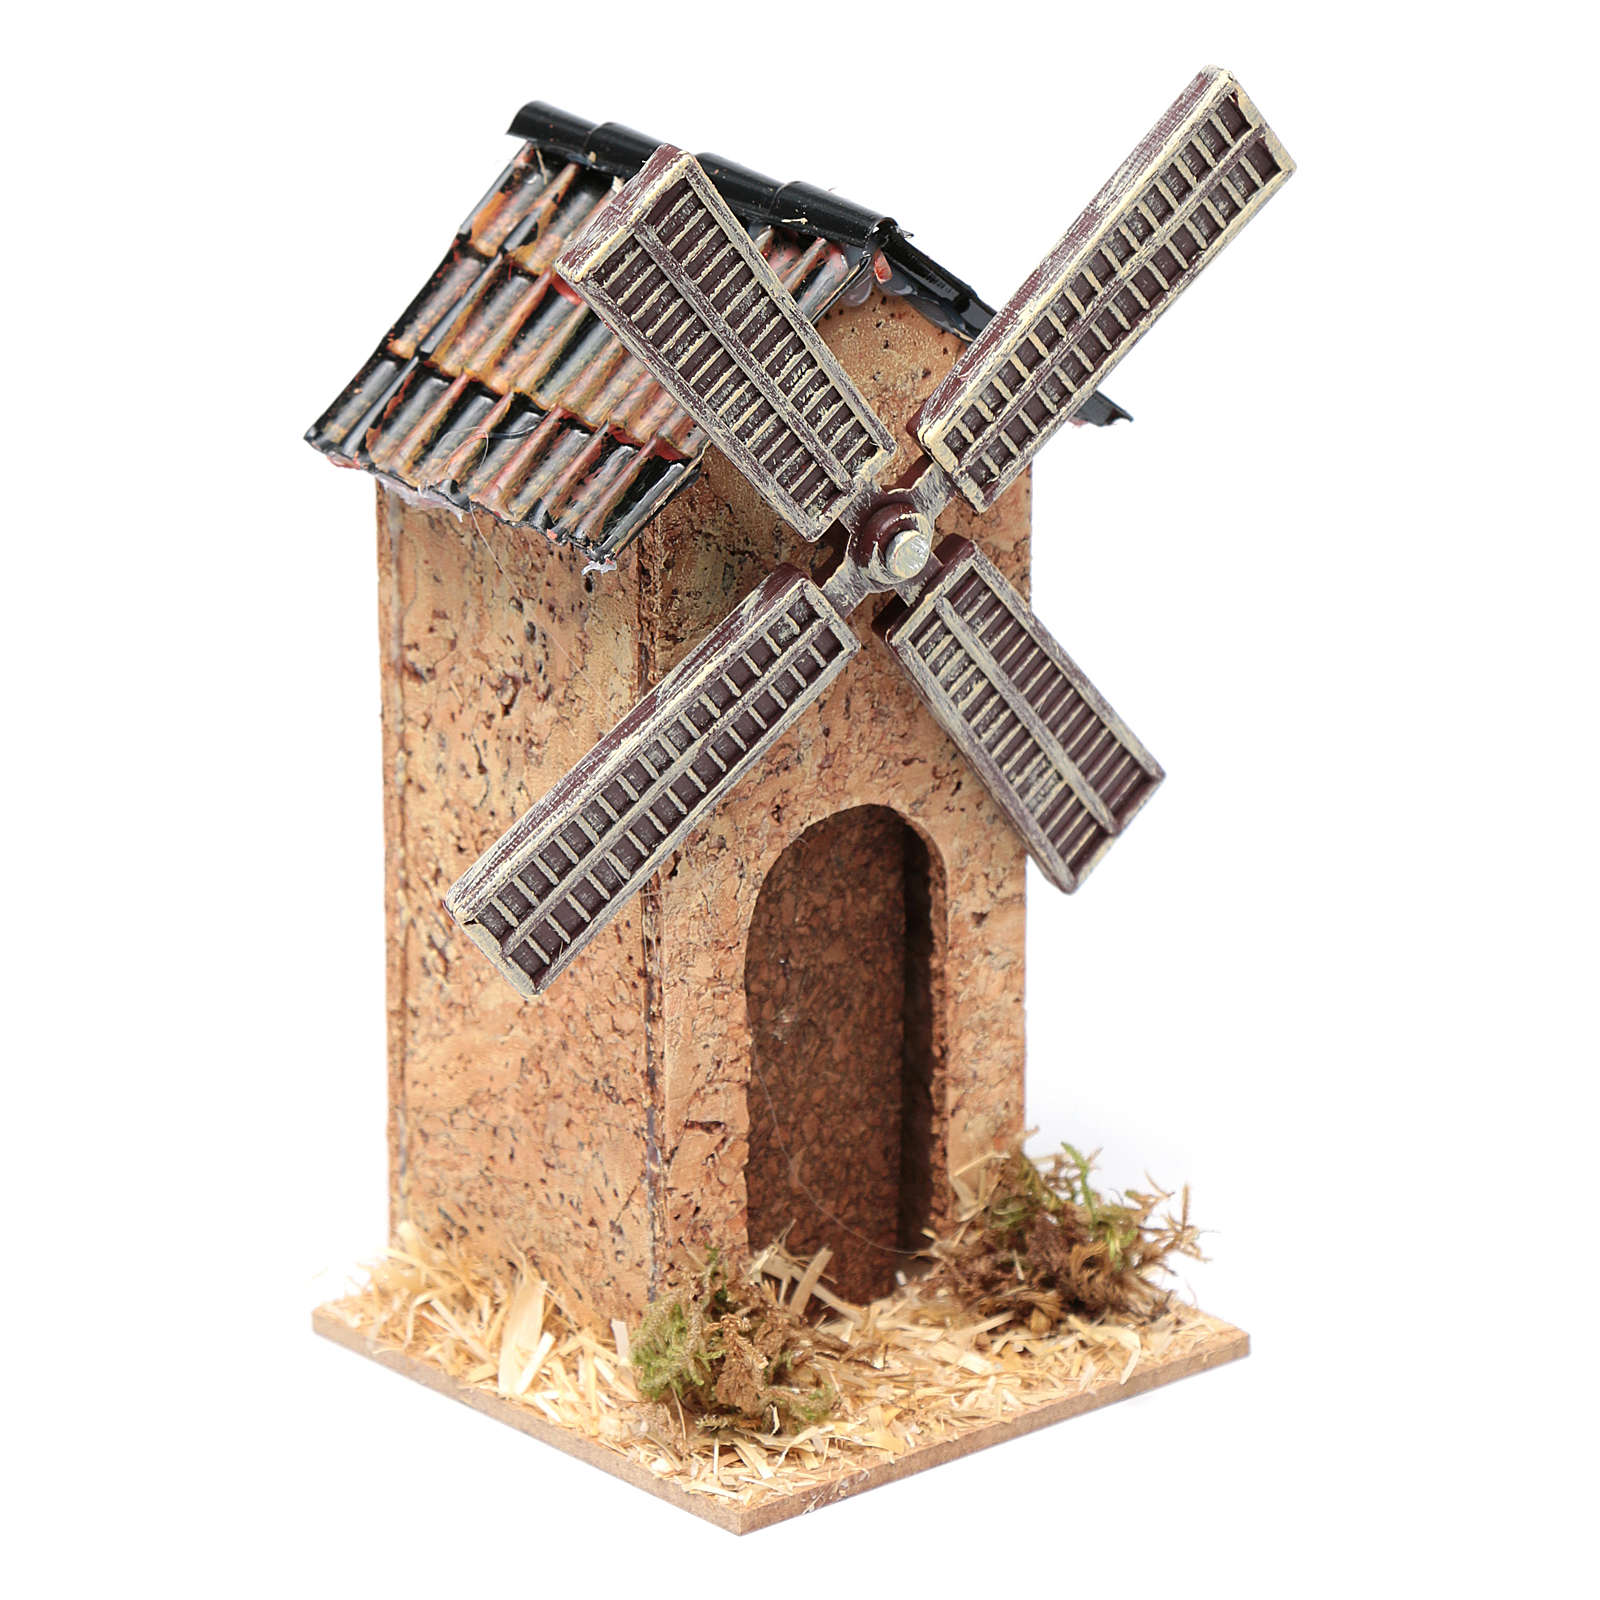 Nativity scene windmill in cork 10x5x5 cm 4